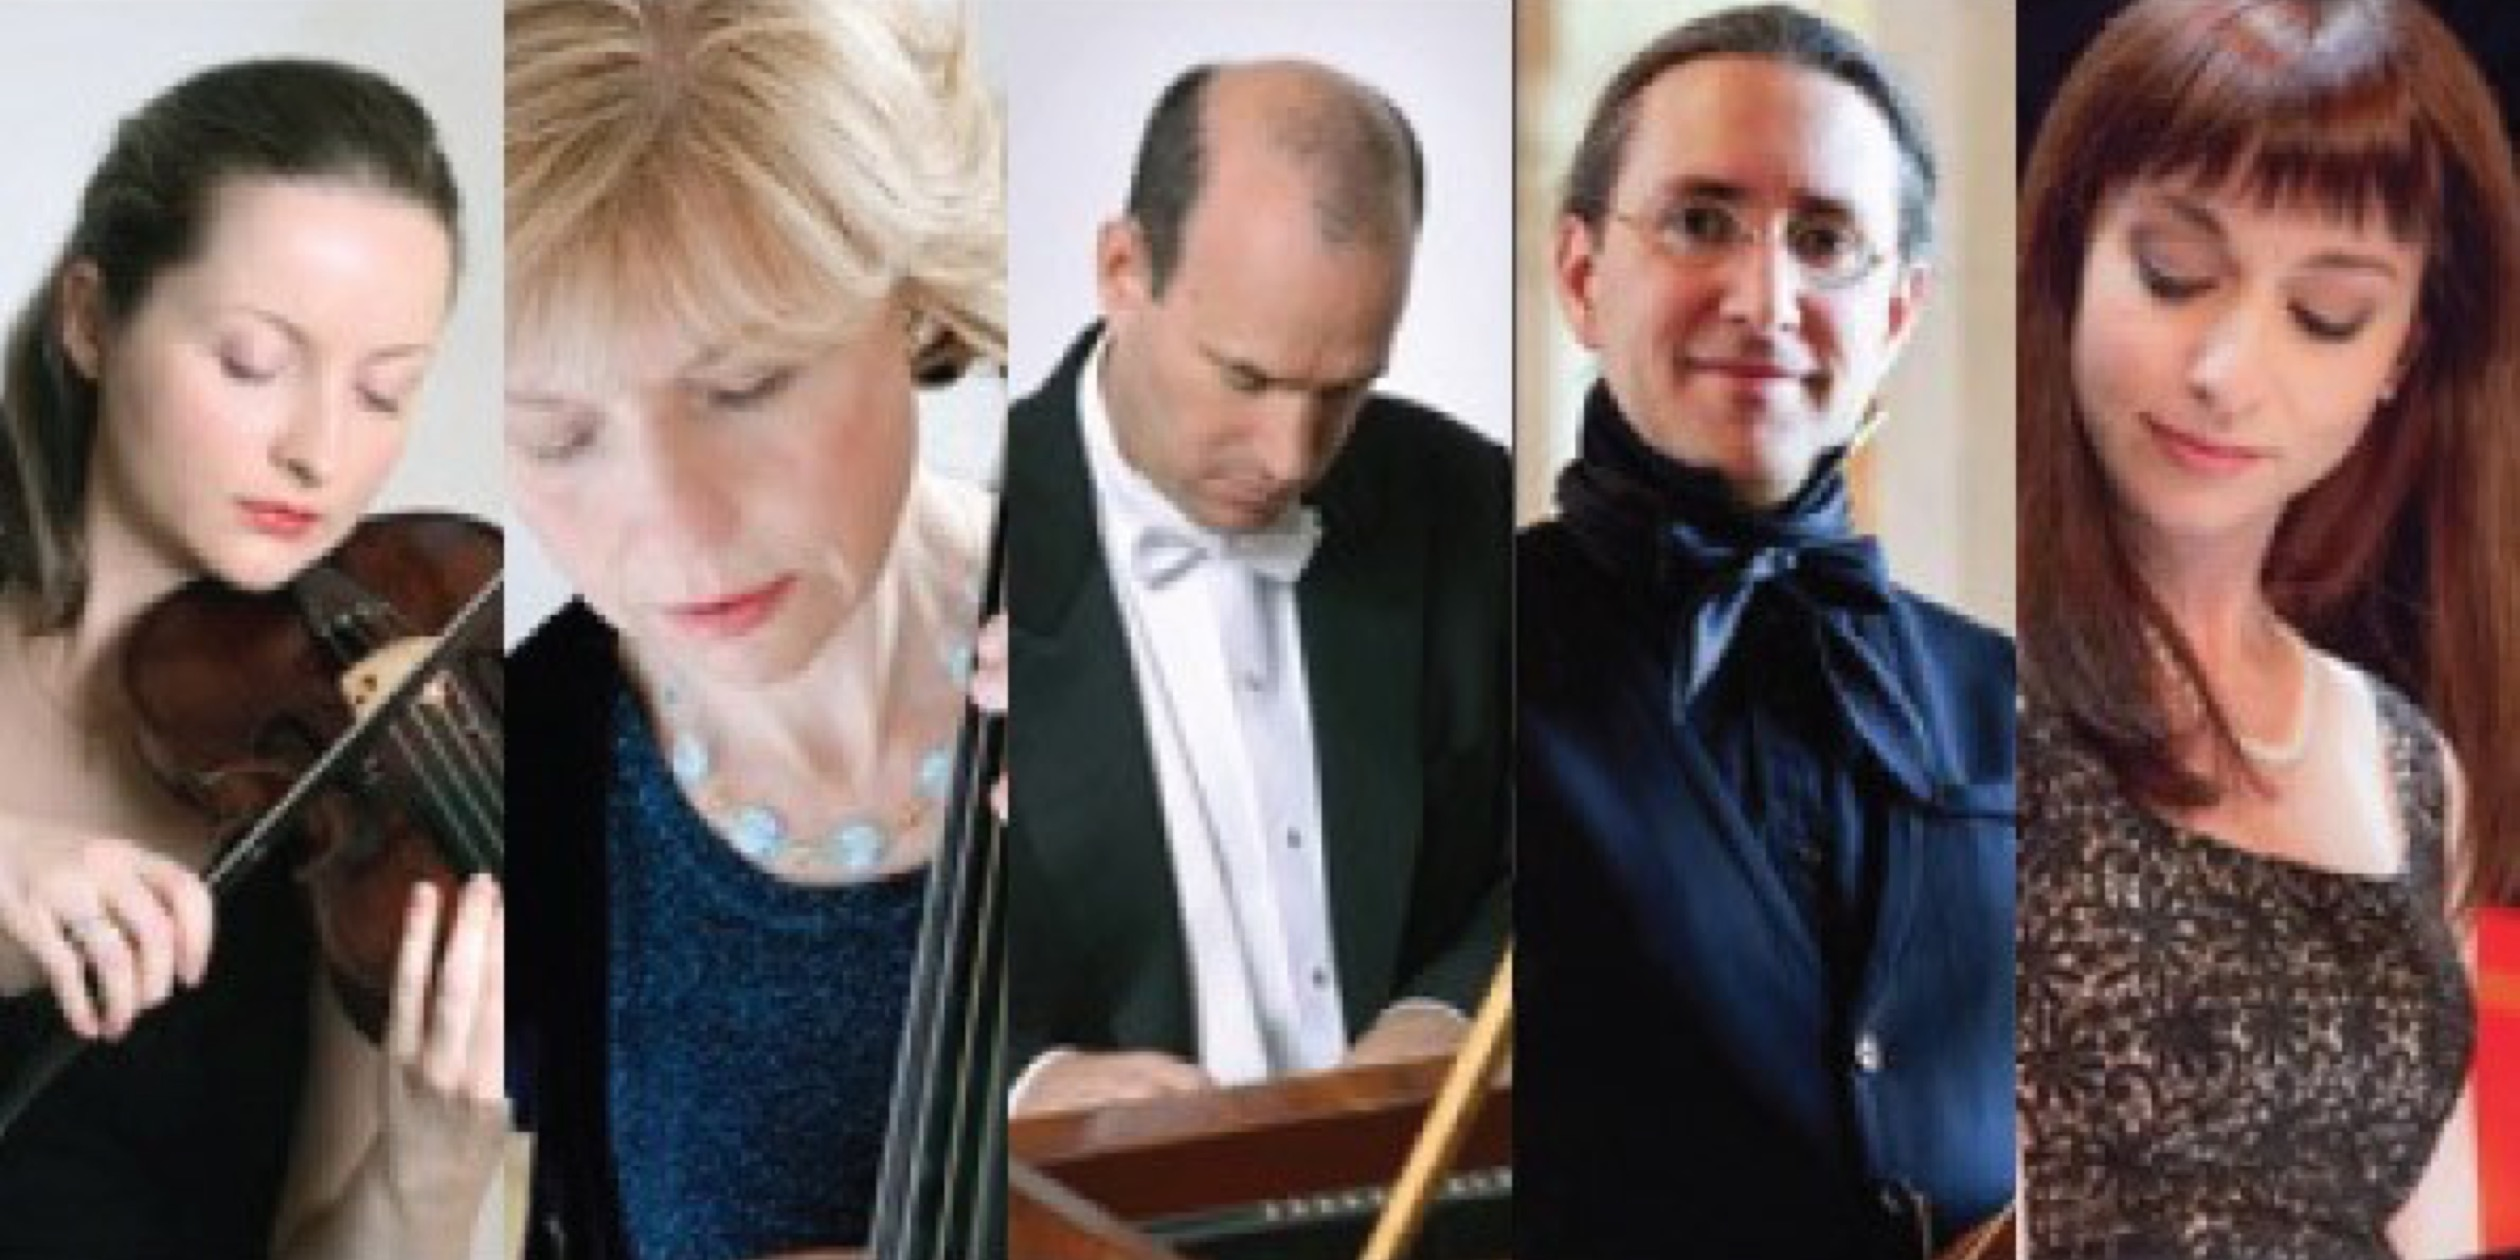 Four Nations: Bach & Handel | Mon, Jan 30, 8 pm